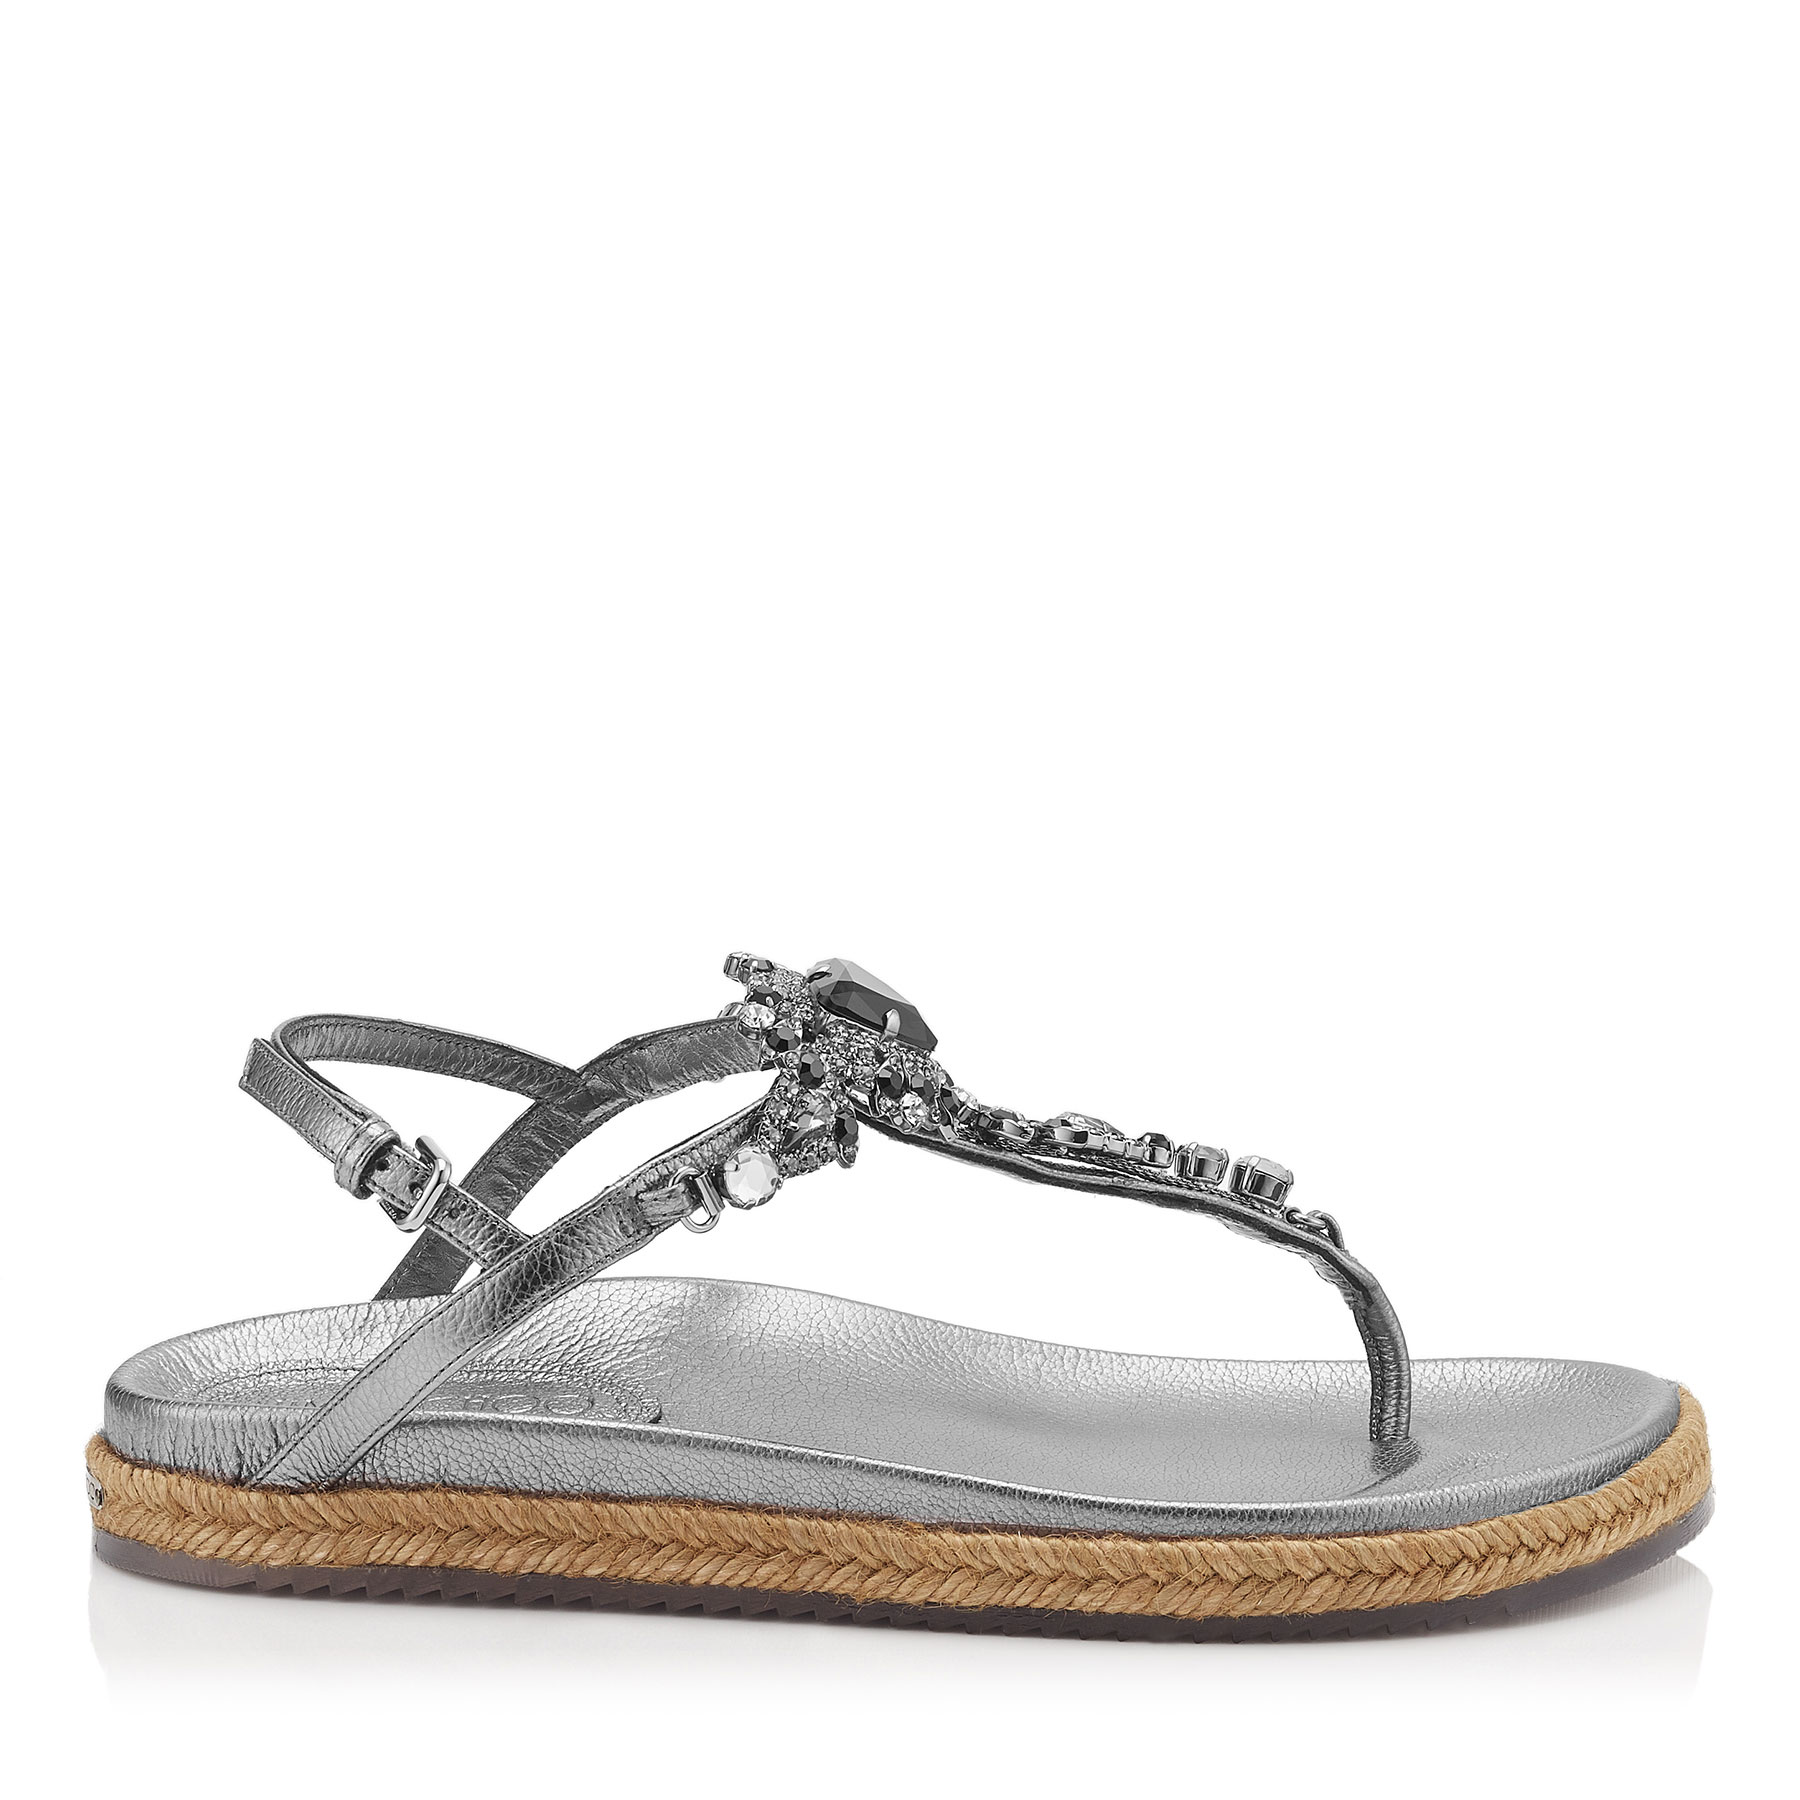 NEAL FLAT Steel Mix Metallic Grainy Leather Sandals with Jewel Piece by Jimmy Choo